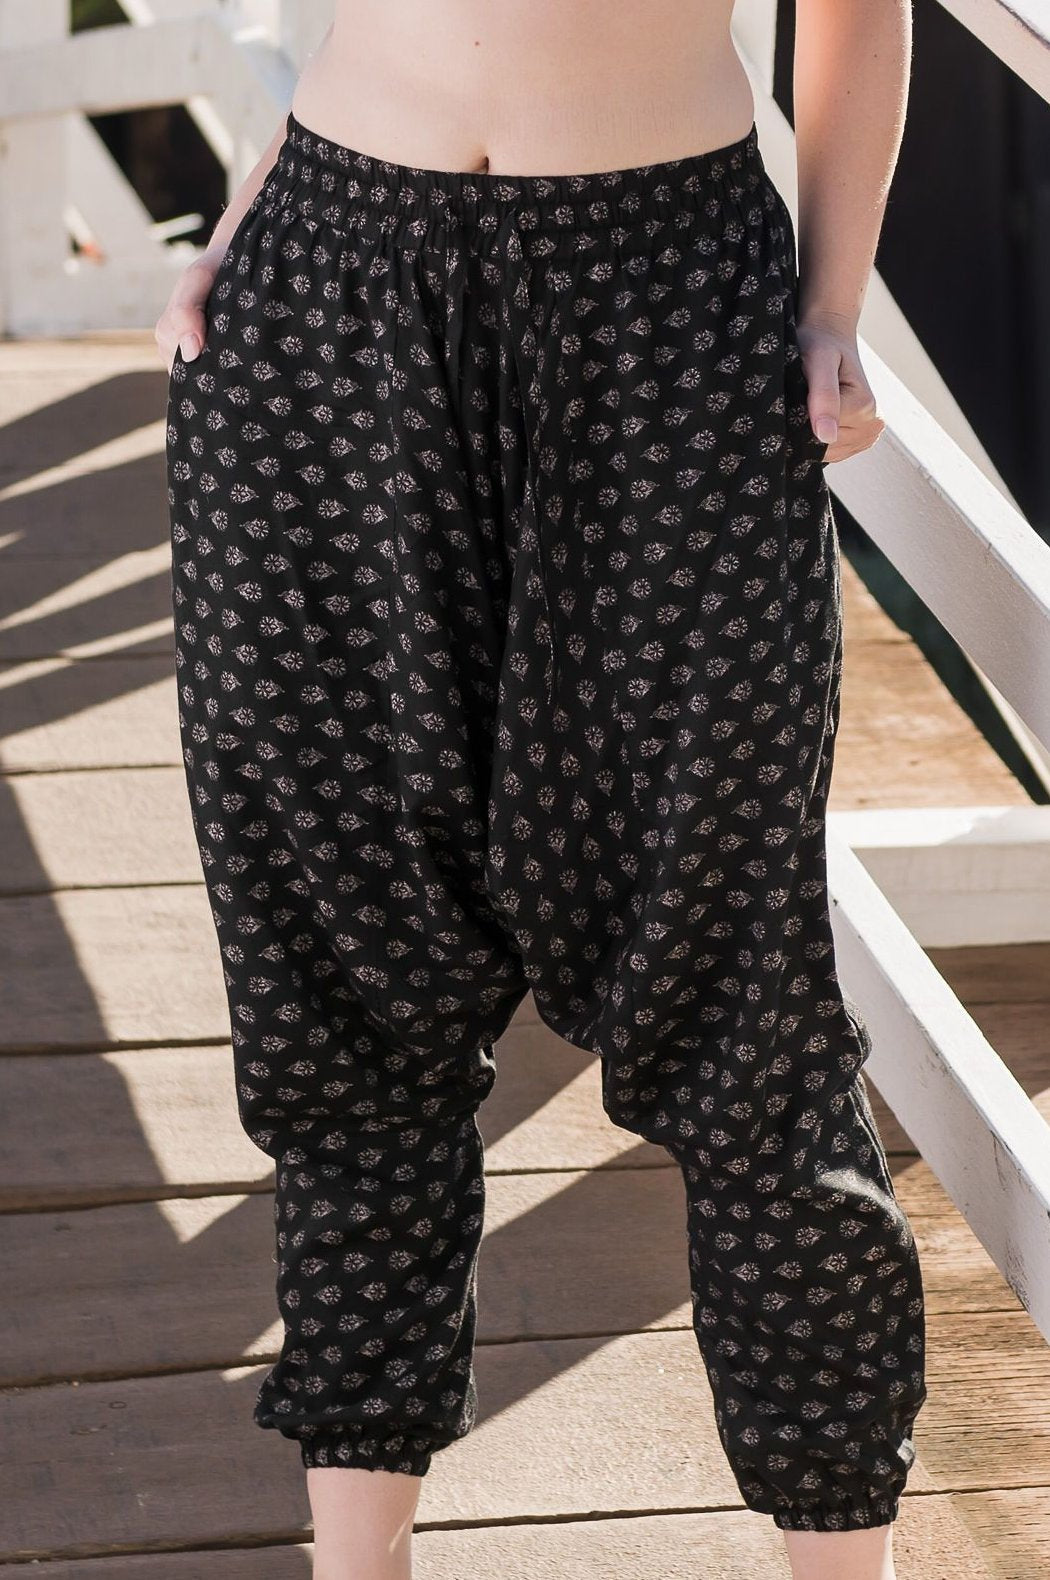 Nighttime Floral Harem Pants Ankle Length-Soulfree Yoga